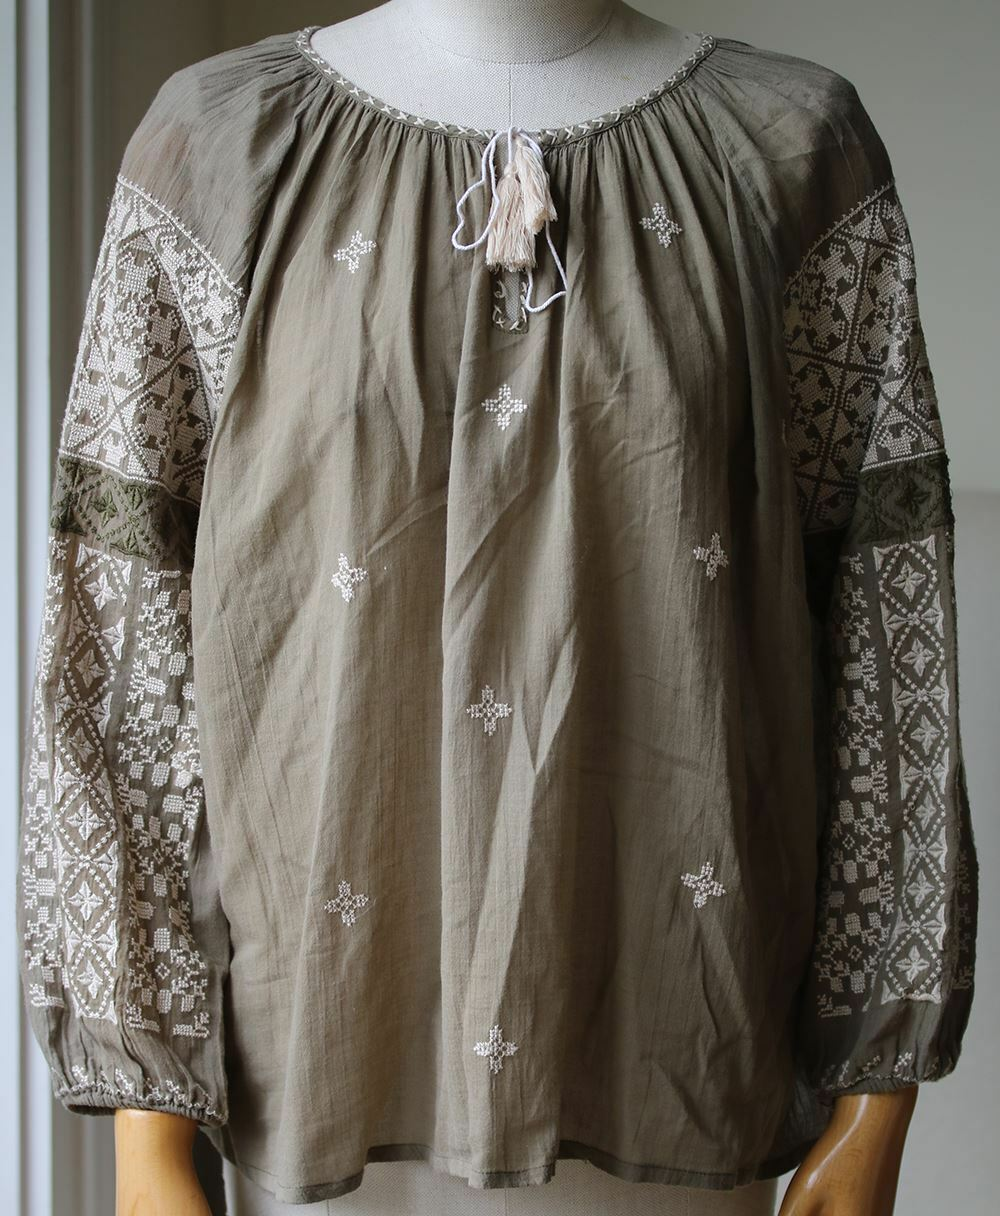 NILI LOTAN MALO BOHO EMBROIDErot TOP MEDIUM